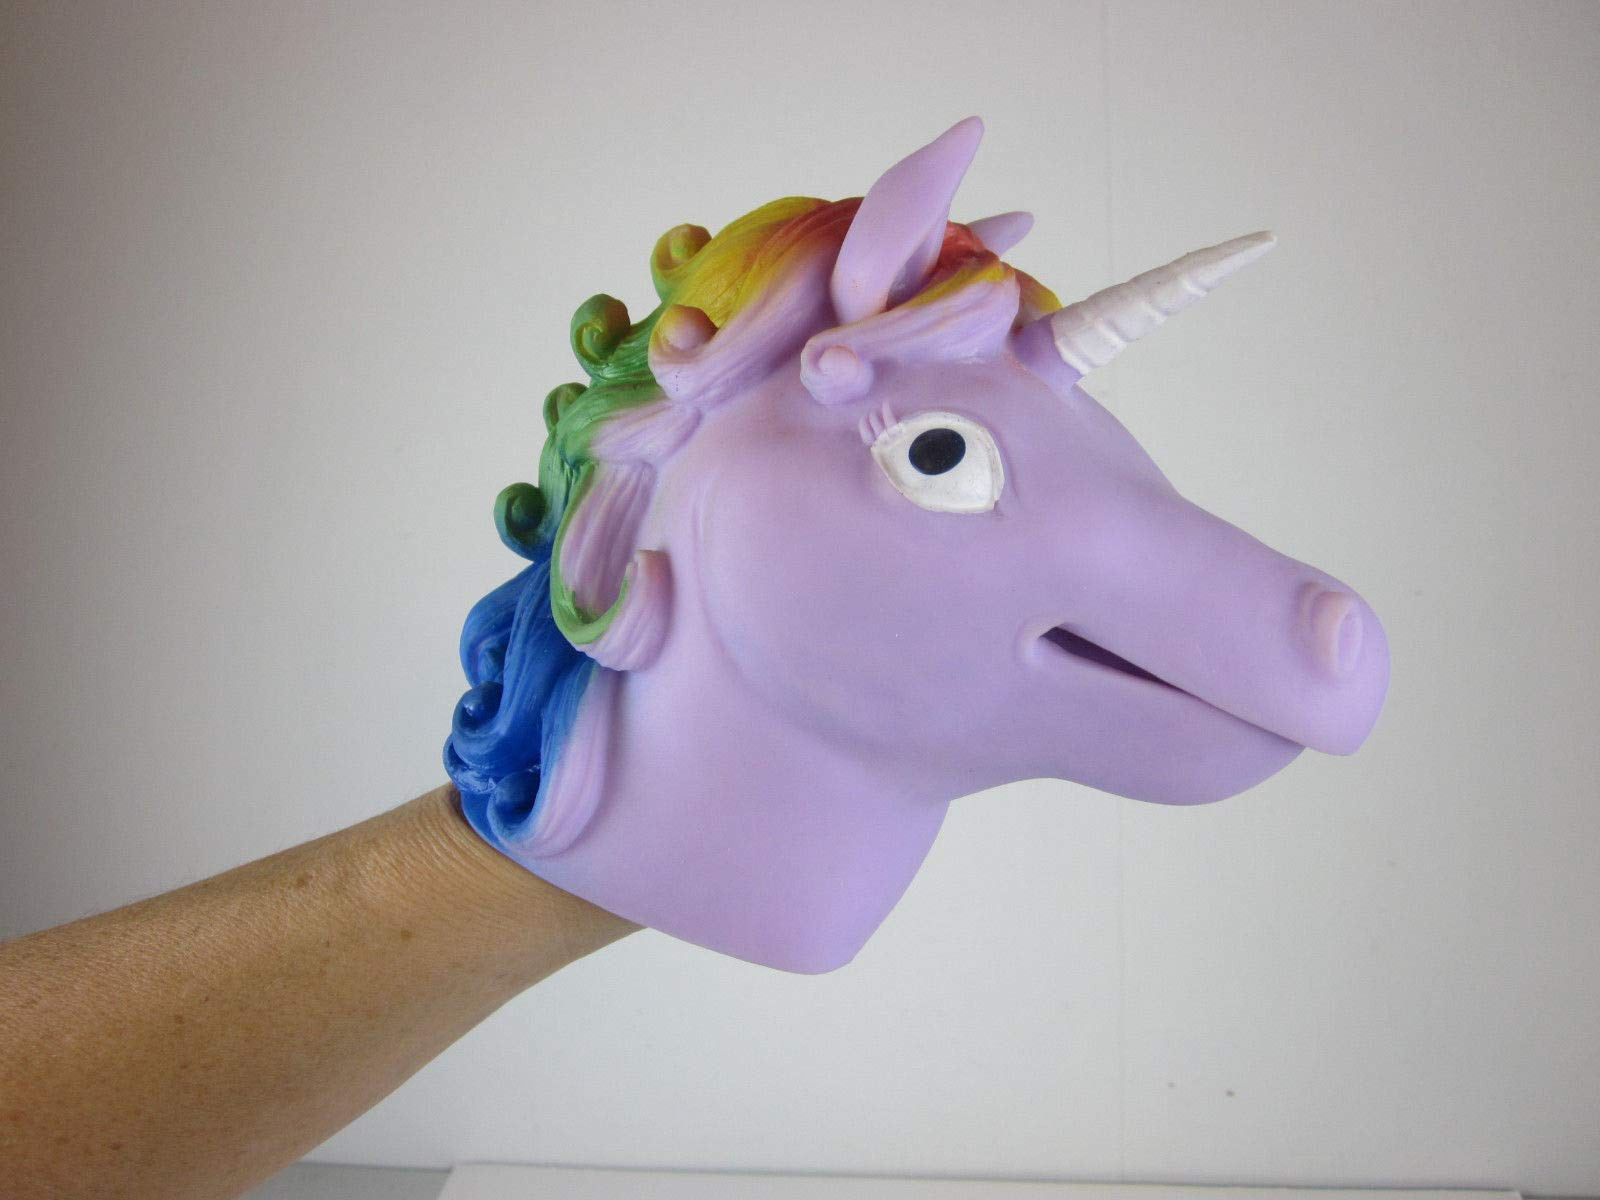 Big Game Toys~Unicorn Hand Puppet Rainbow Mane Stretchy Rubber Schylling Pink or Purple 5